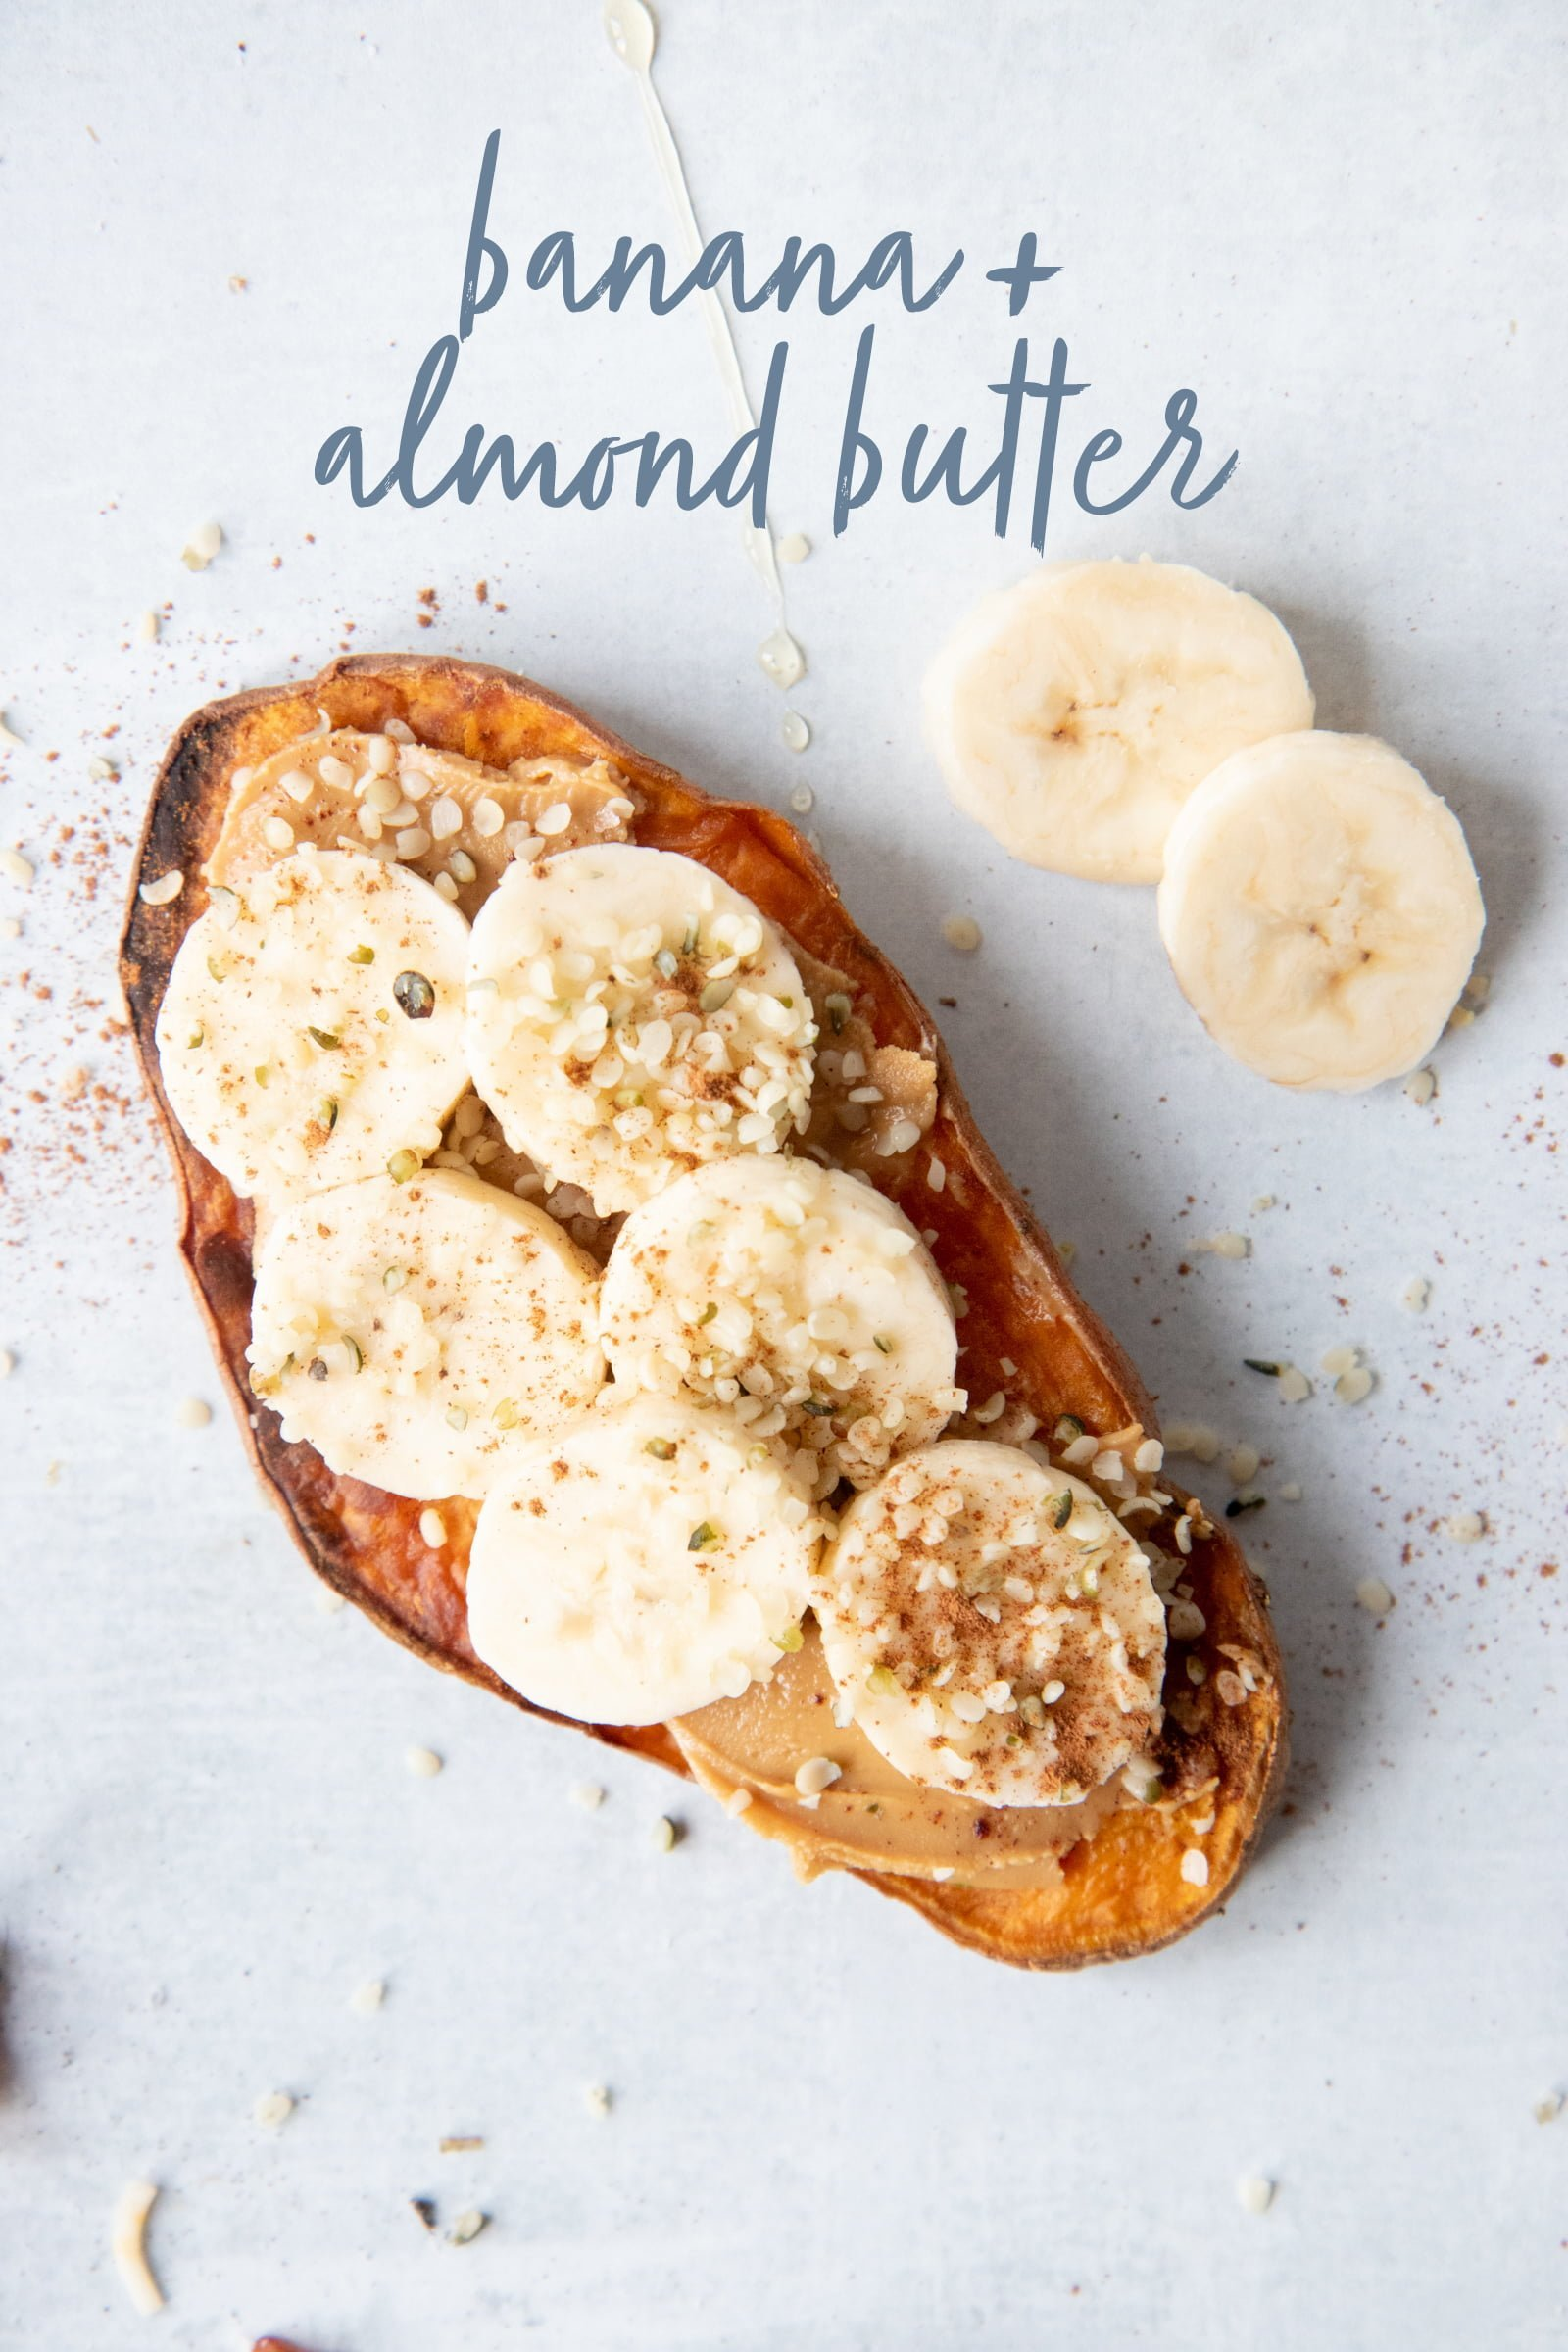 Sweet Potato Toast topped with almond butter and banana slices